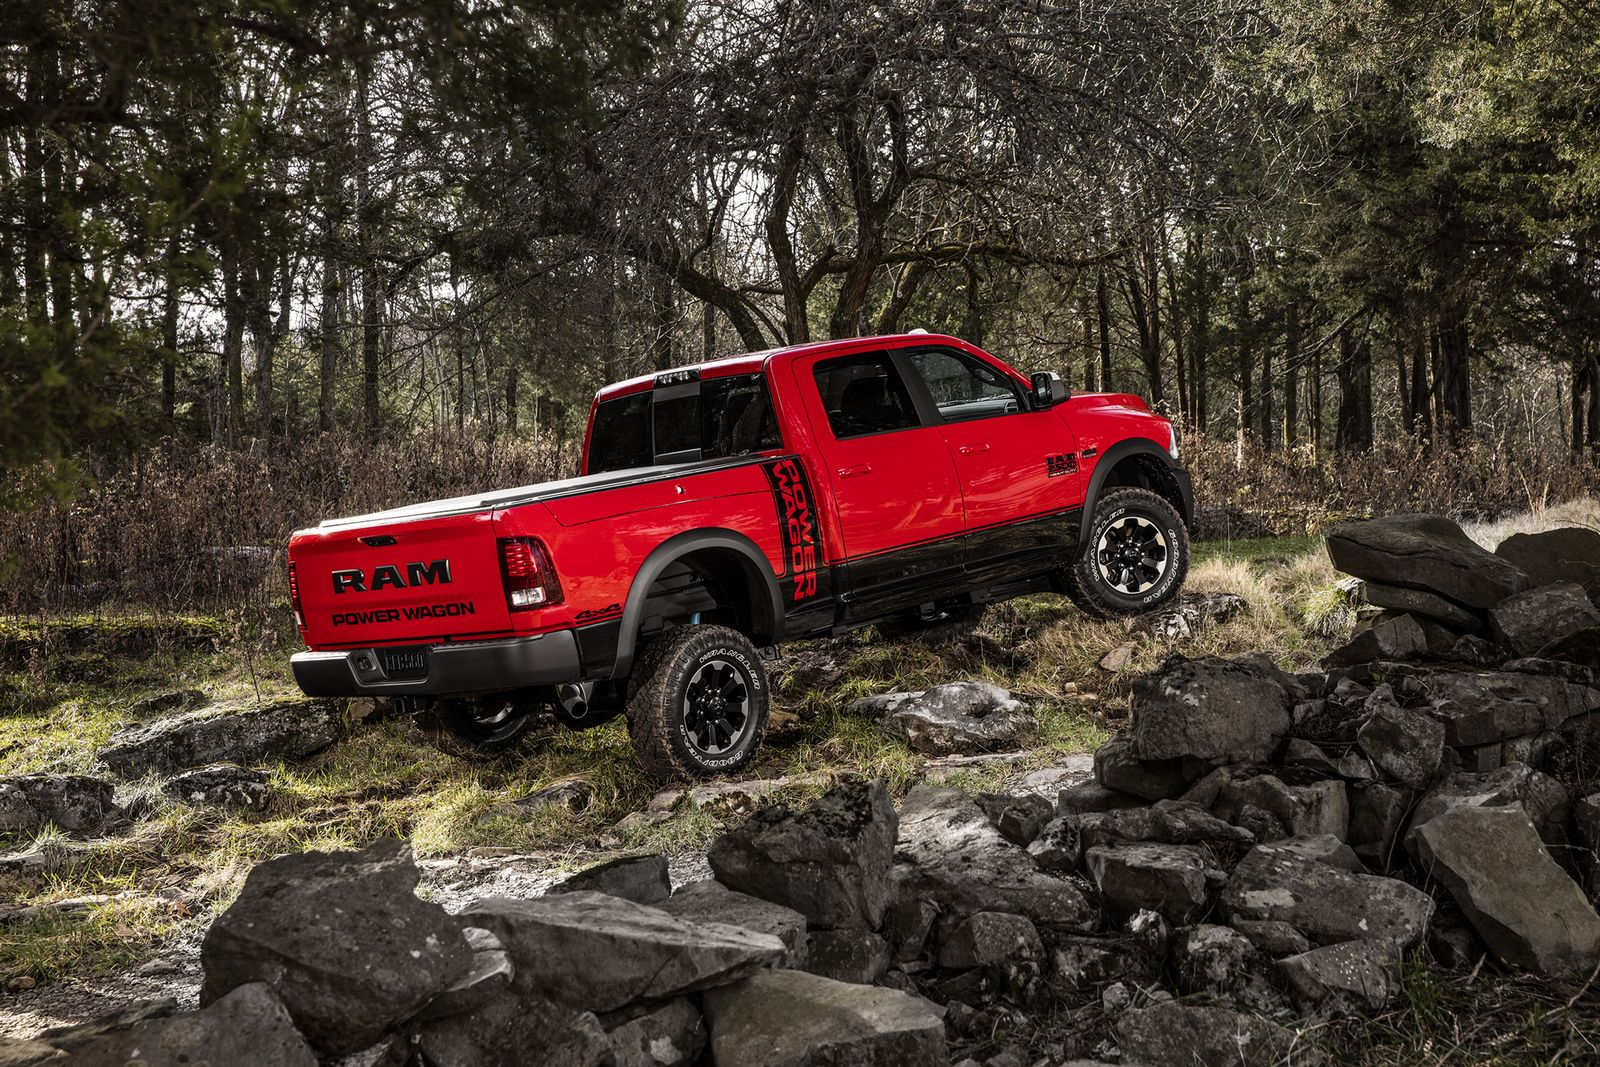 New 2017 ram power wagon the ultimate off road truck benefits from new design